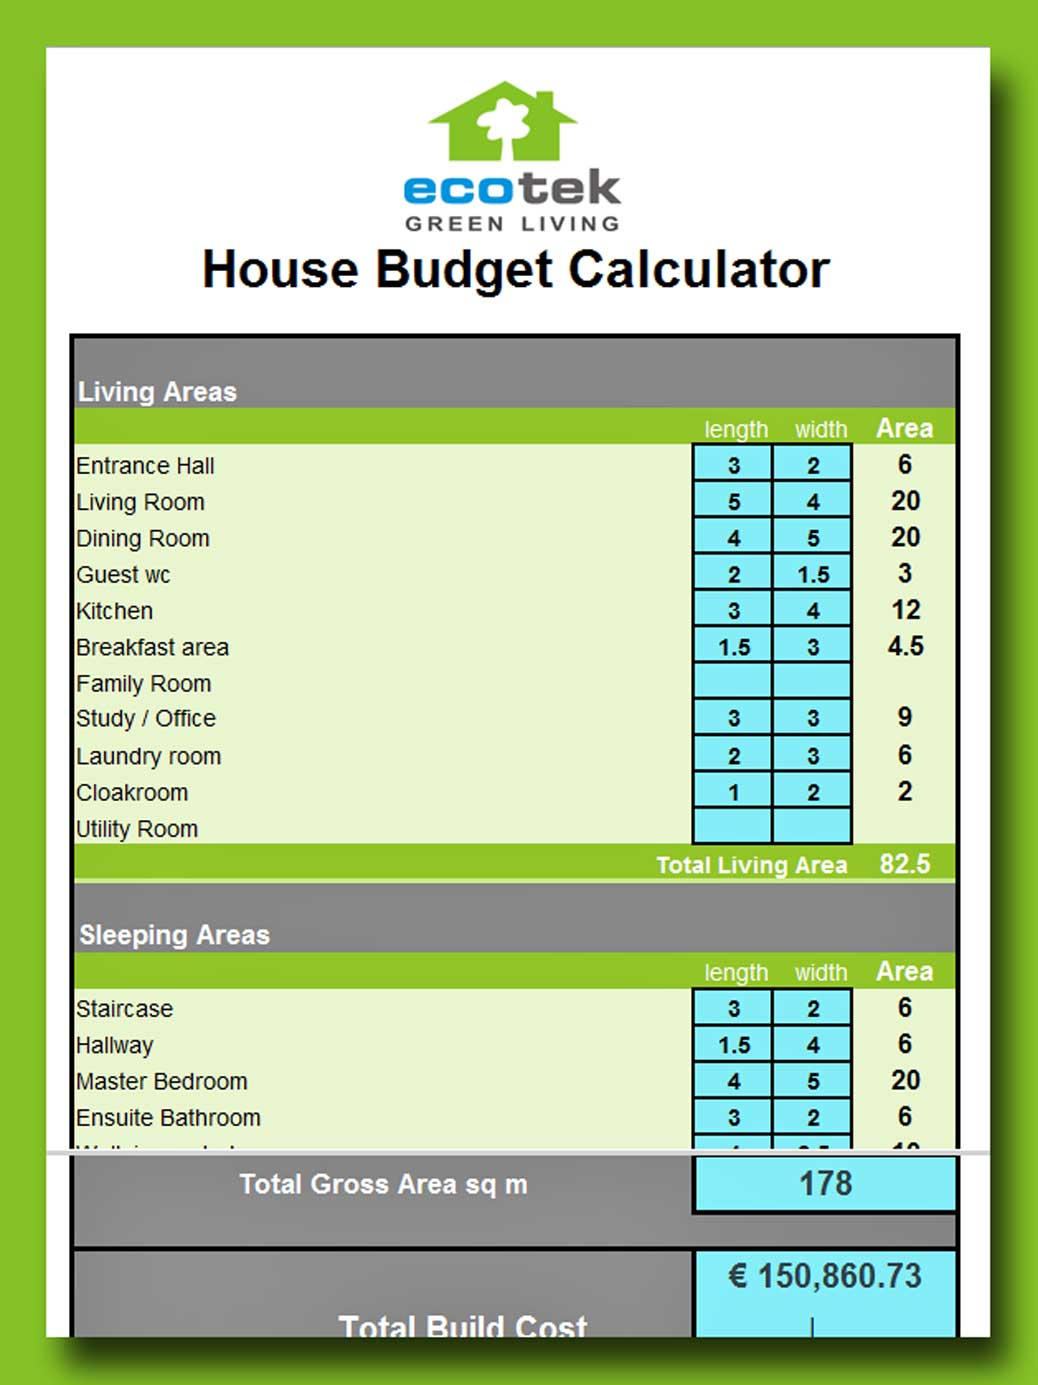 a spreadhseet image showing a calculation of house budgetting